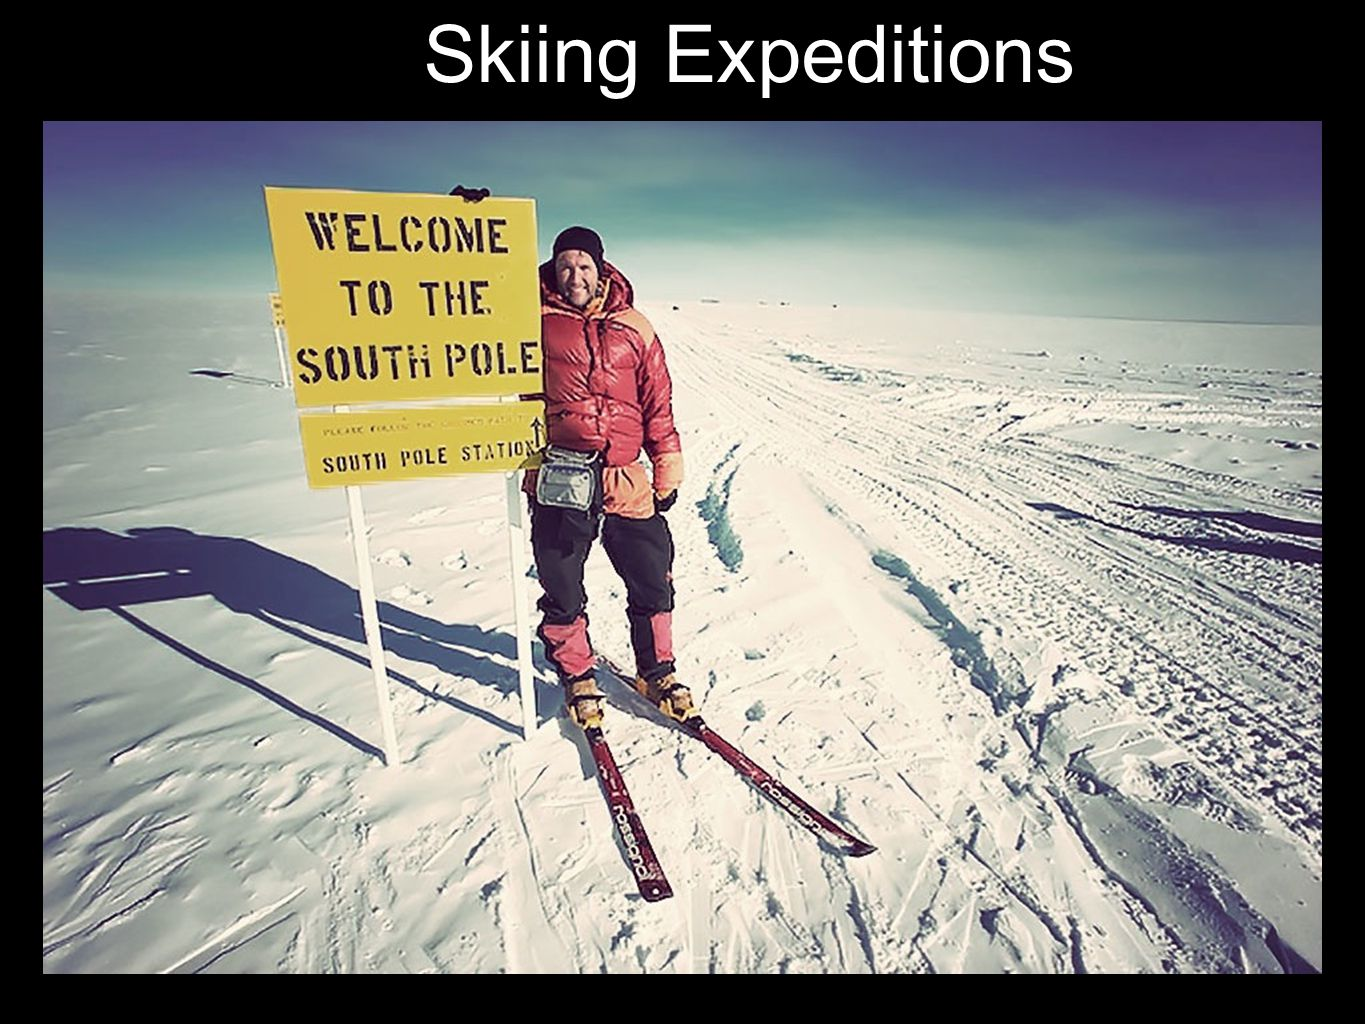 Skiing Expeditions